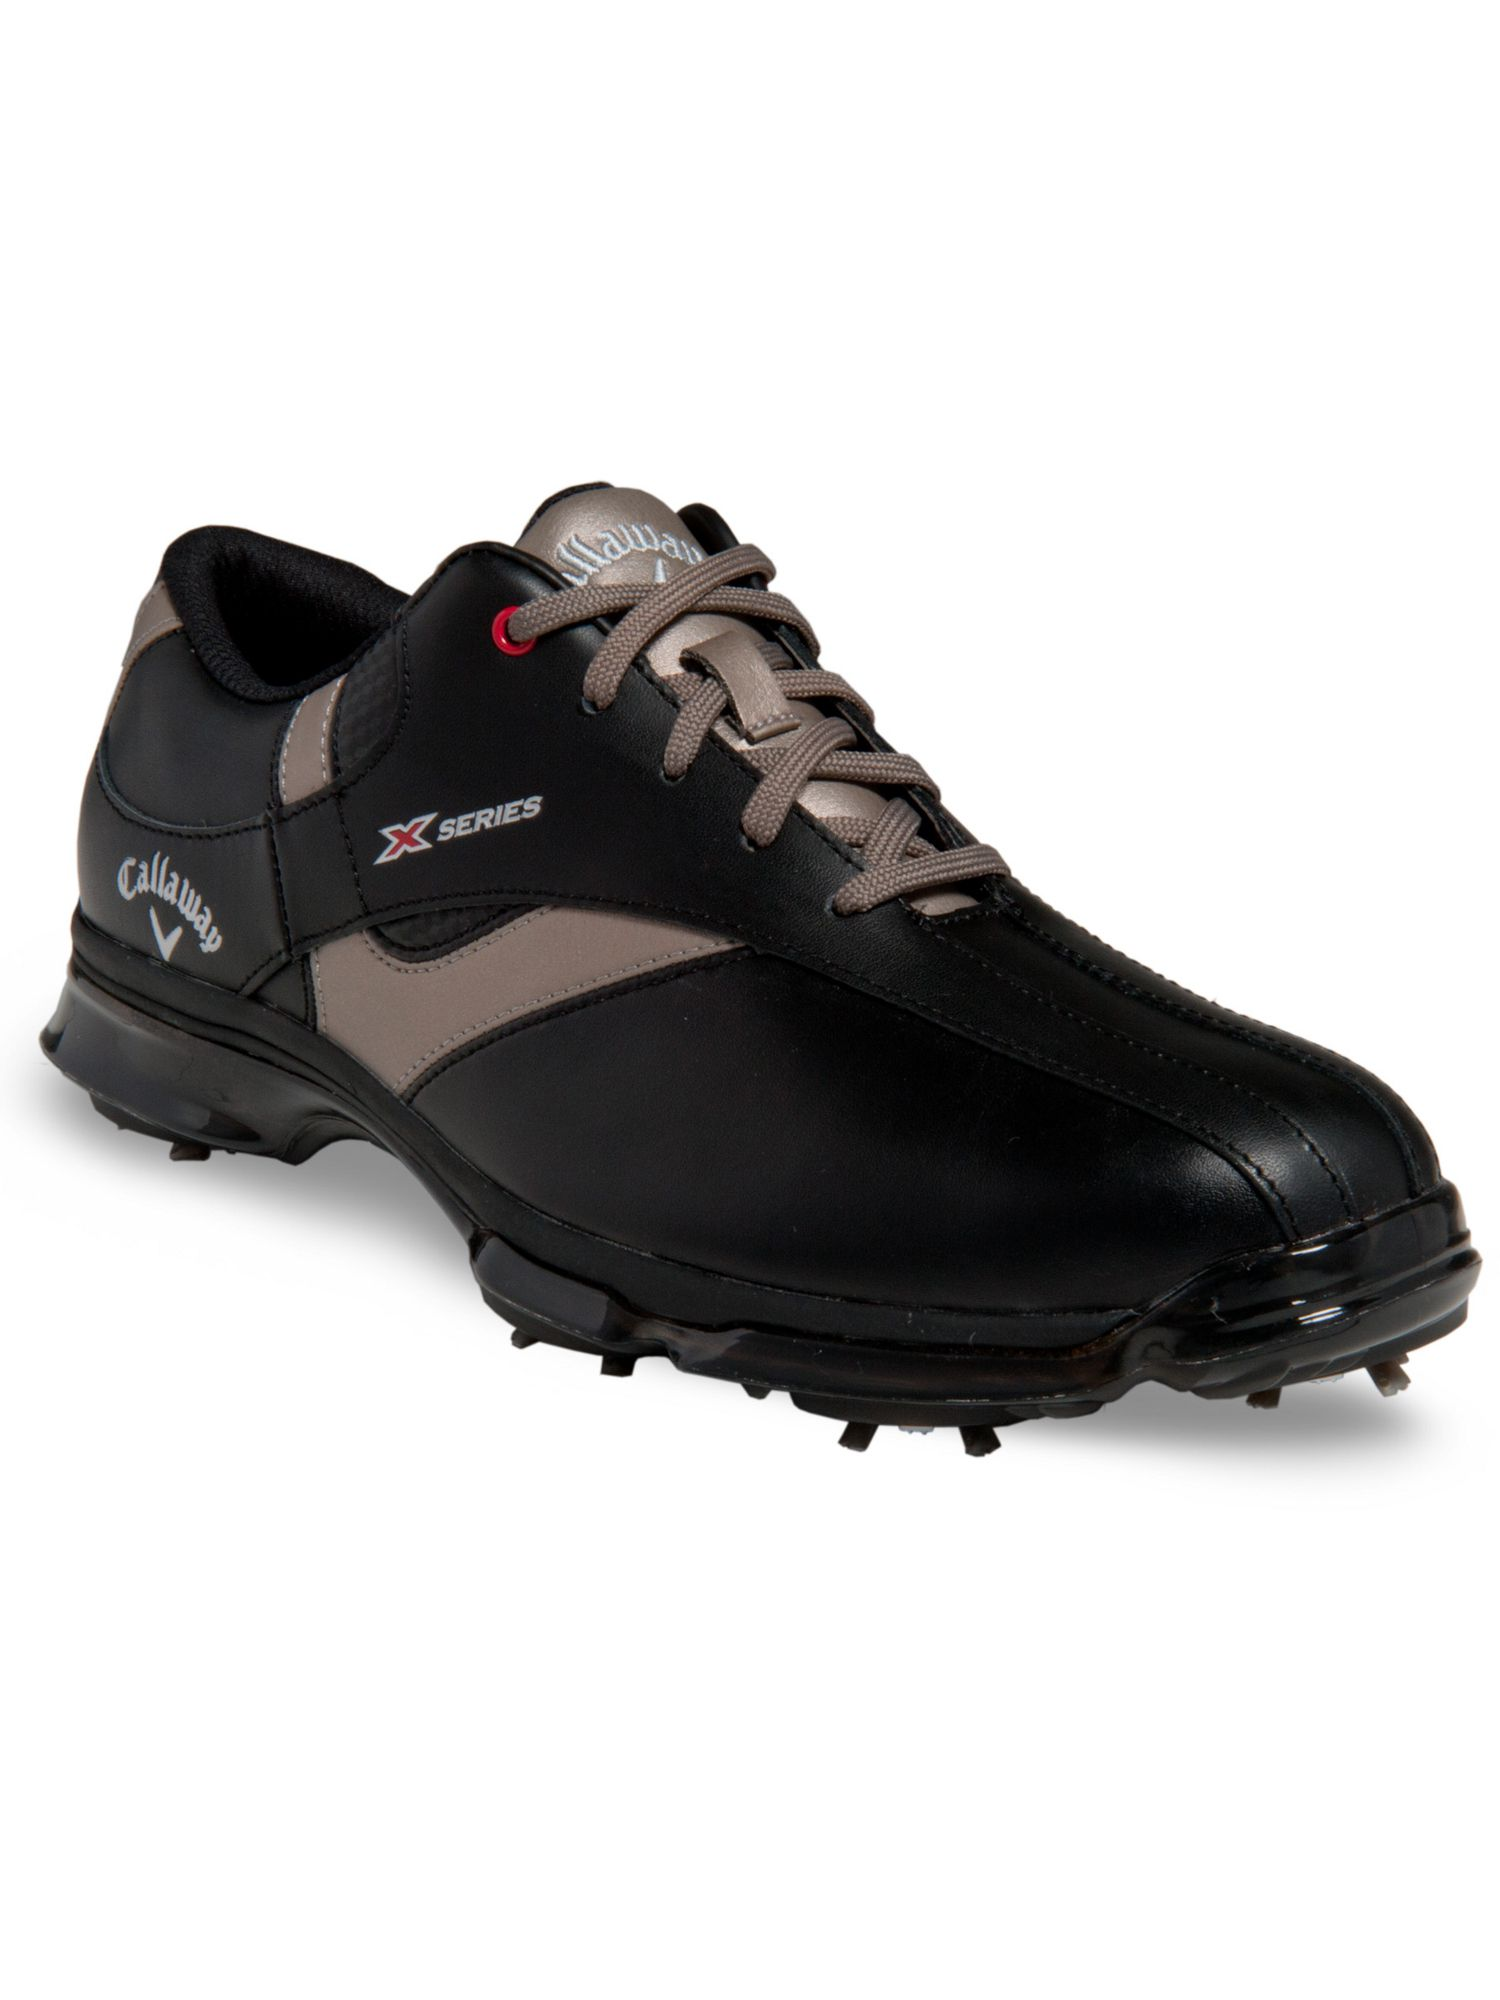 X nitro golf shoes